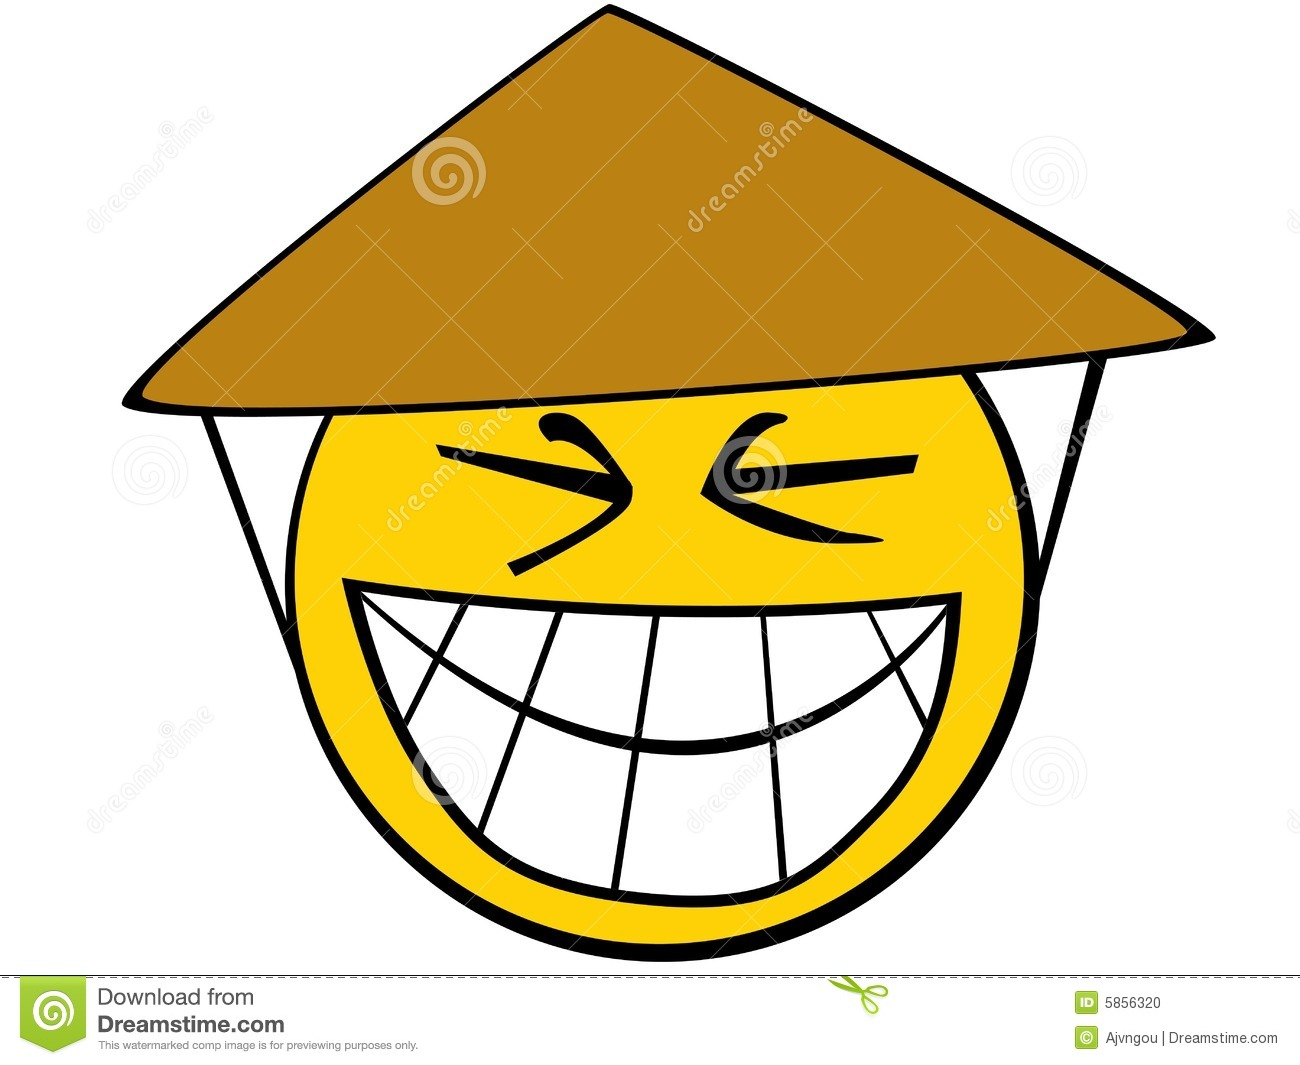 Smiley icon of asian guy with typical hat.